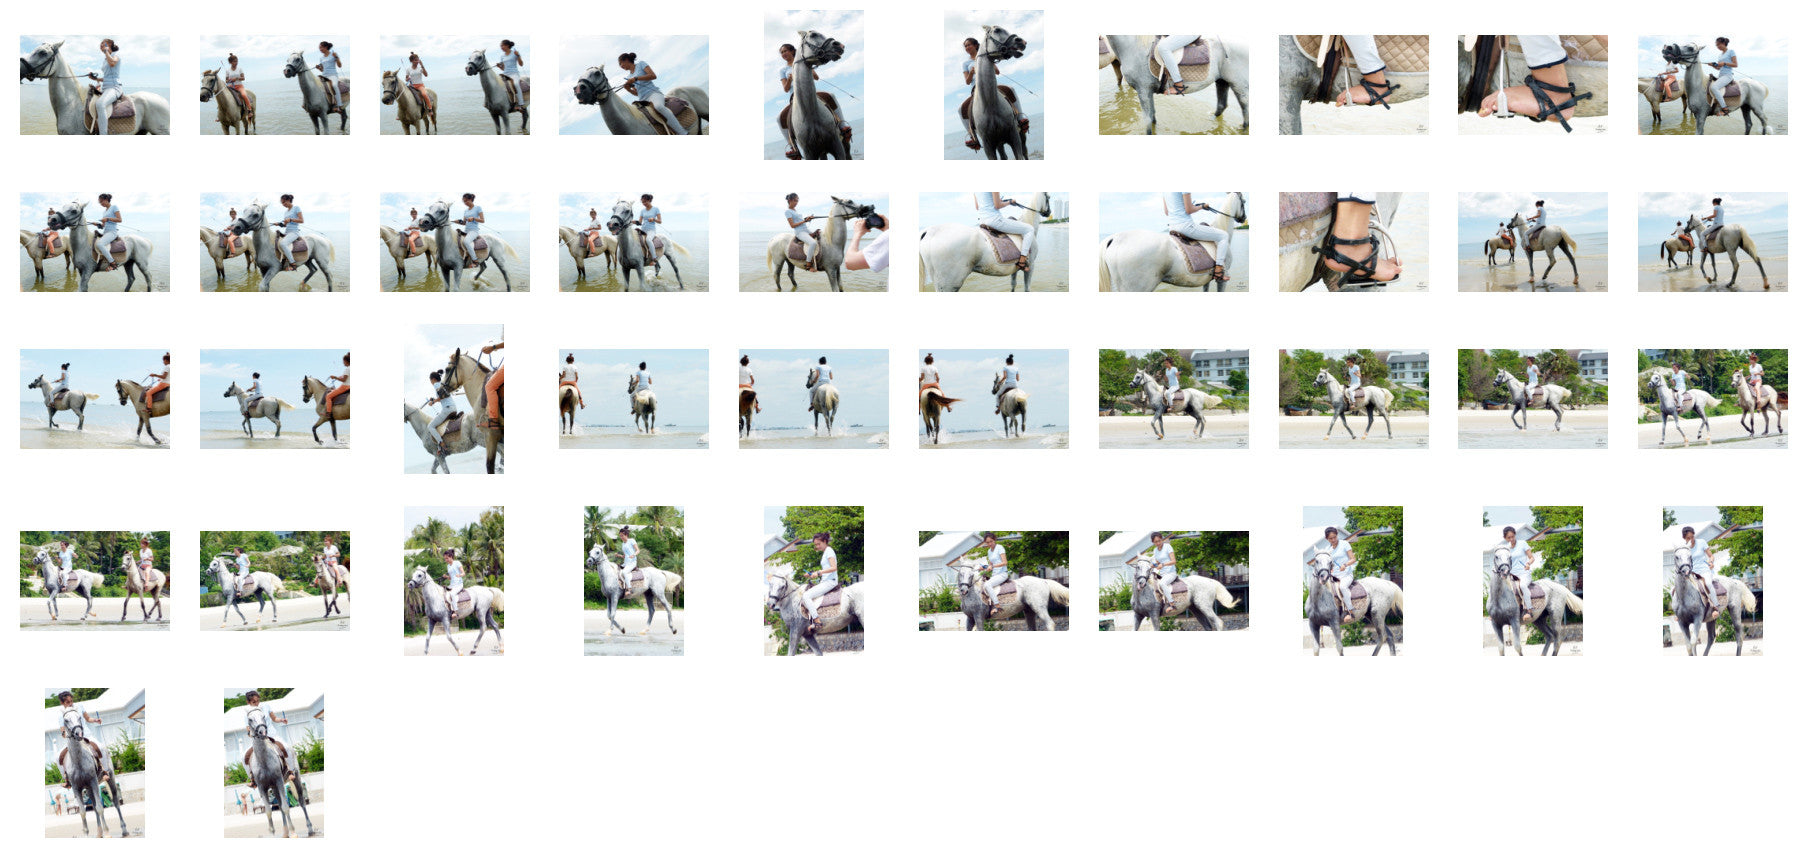 Som in Jodhpurs Riding with Saddle on White Arabian Horse, Part 7 - Riding.Vision